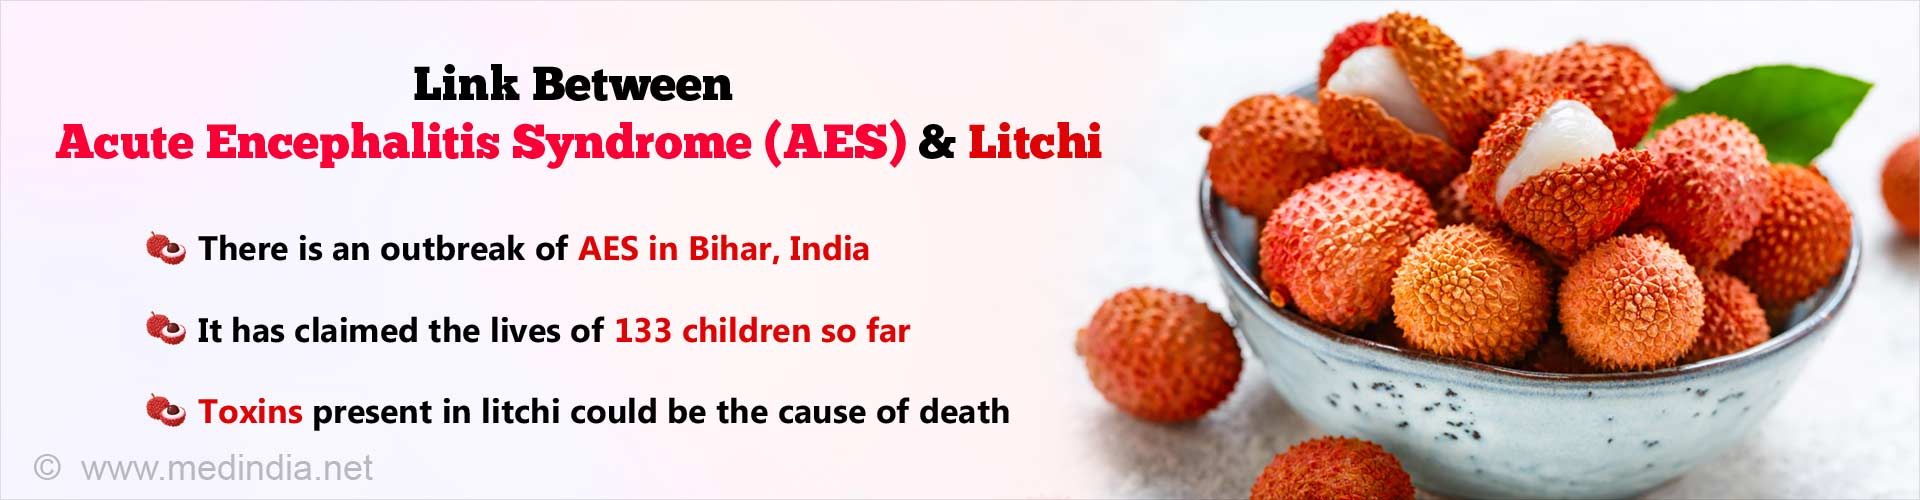 Link between Acute Encephalitis Syndrome (AES) and Litchi. There is an outbreak of AES in Bihar, India. It has claimed the lives of 133 children so far. Toxins present in litchi could be the cause of death.